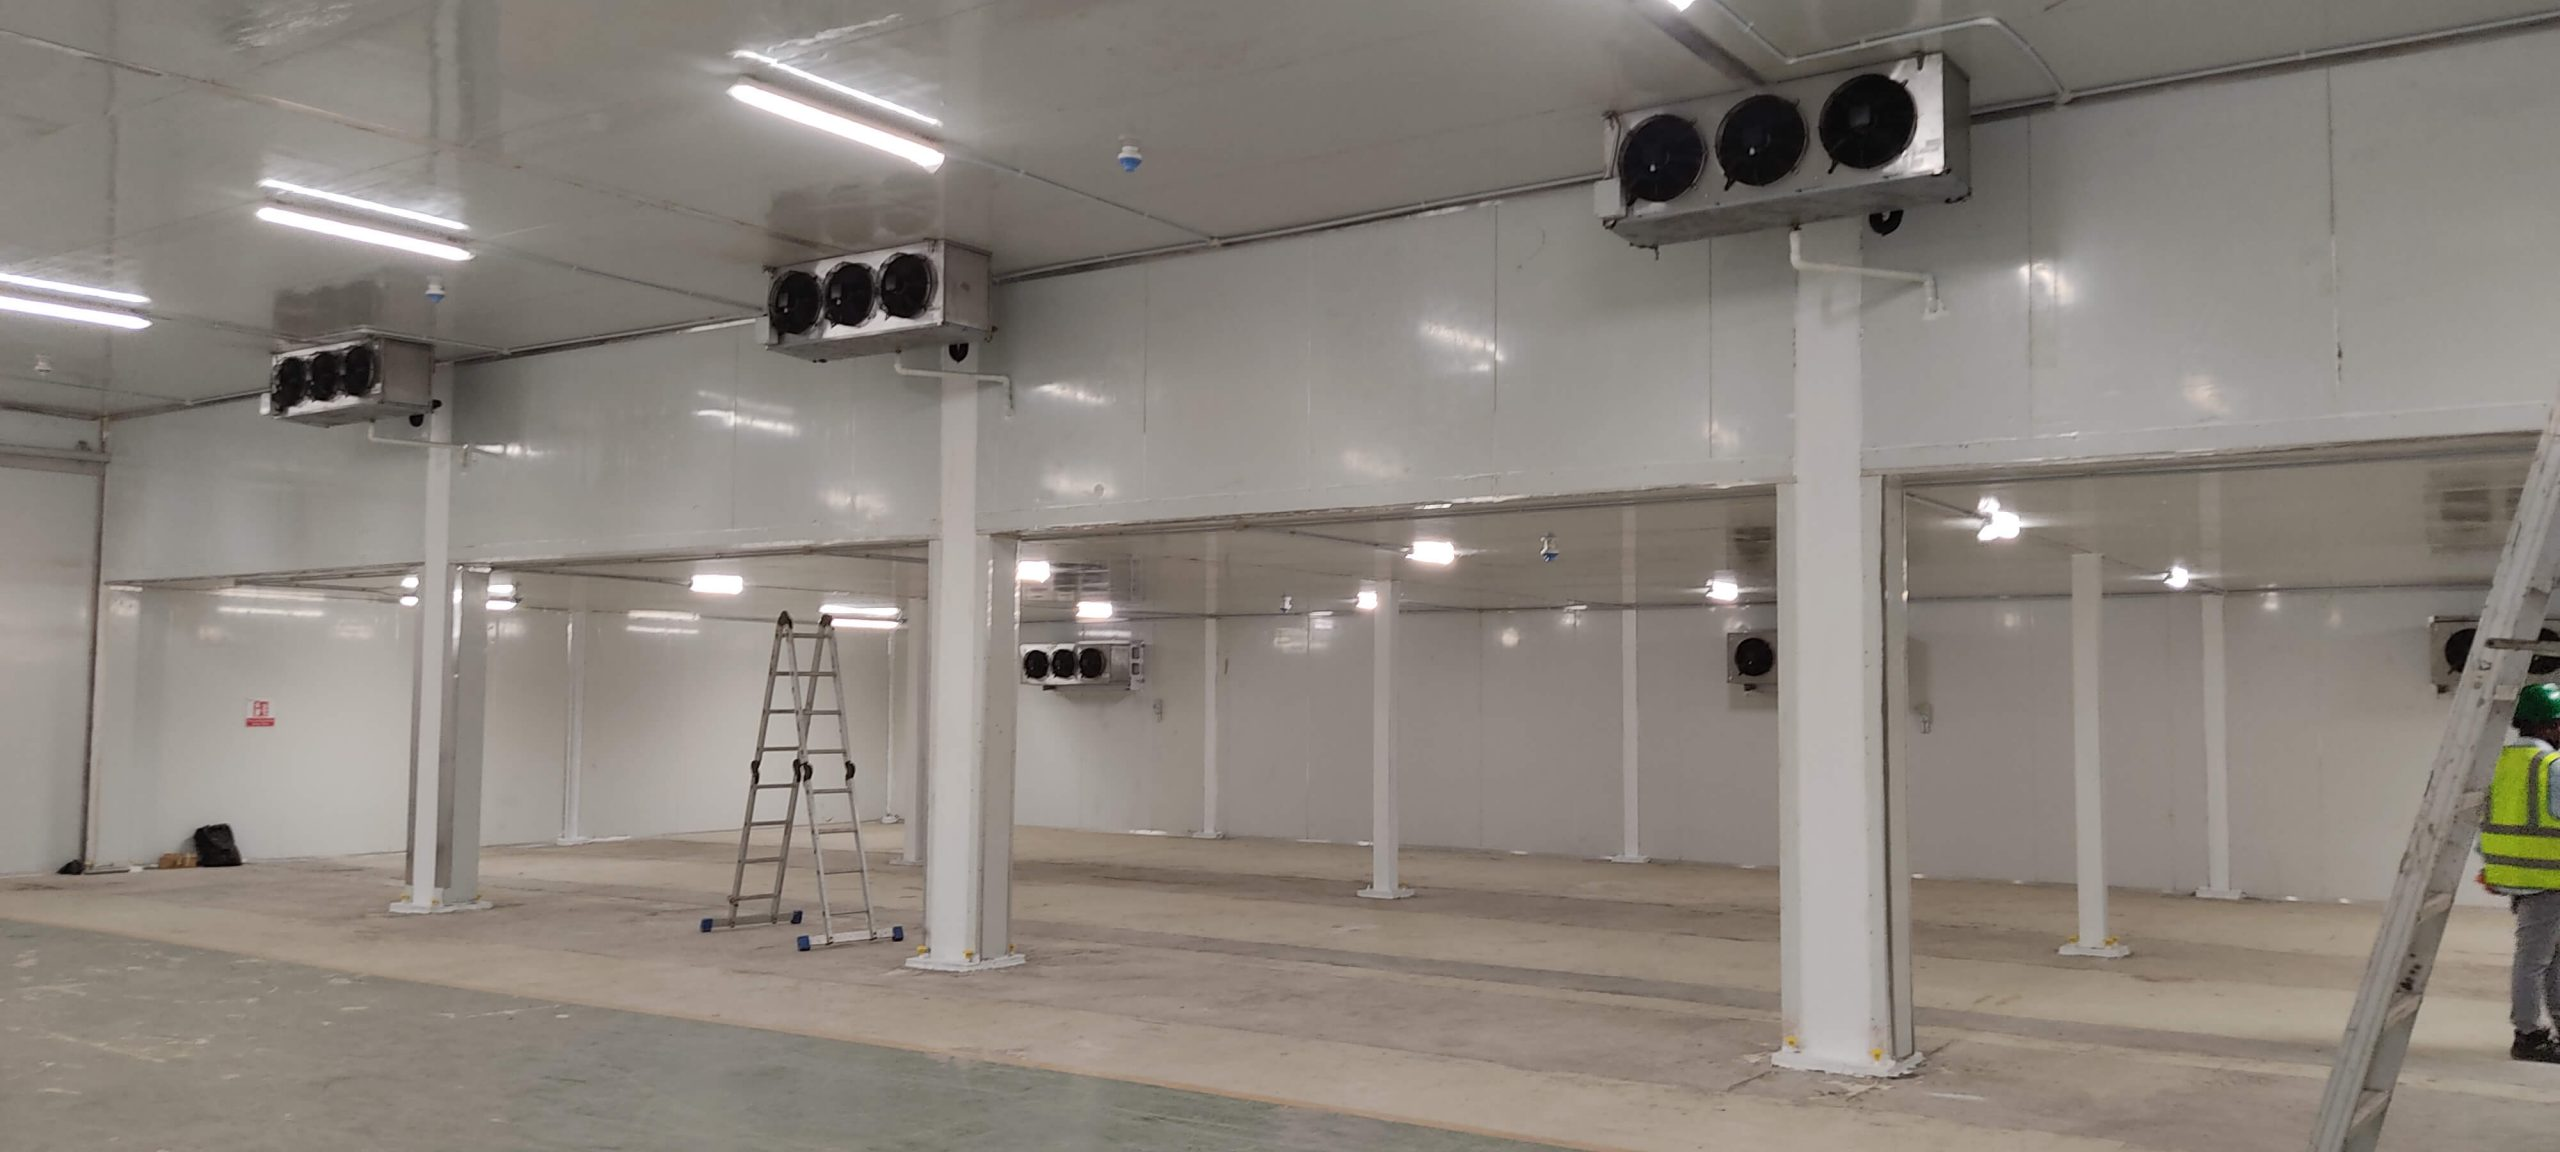 COLD ROOM MANUFACTURERS IN NIGERIA by Akpo Oyegwa Refrigeration Company